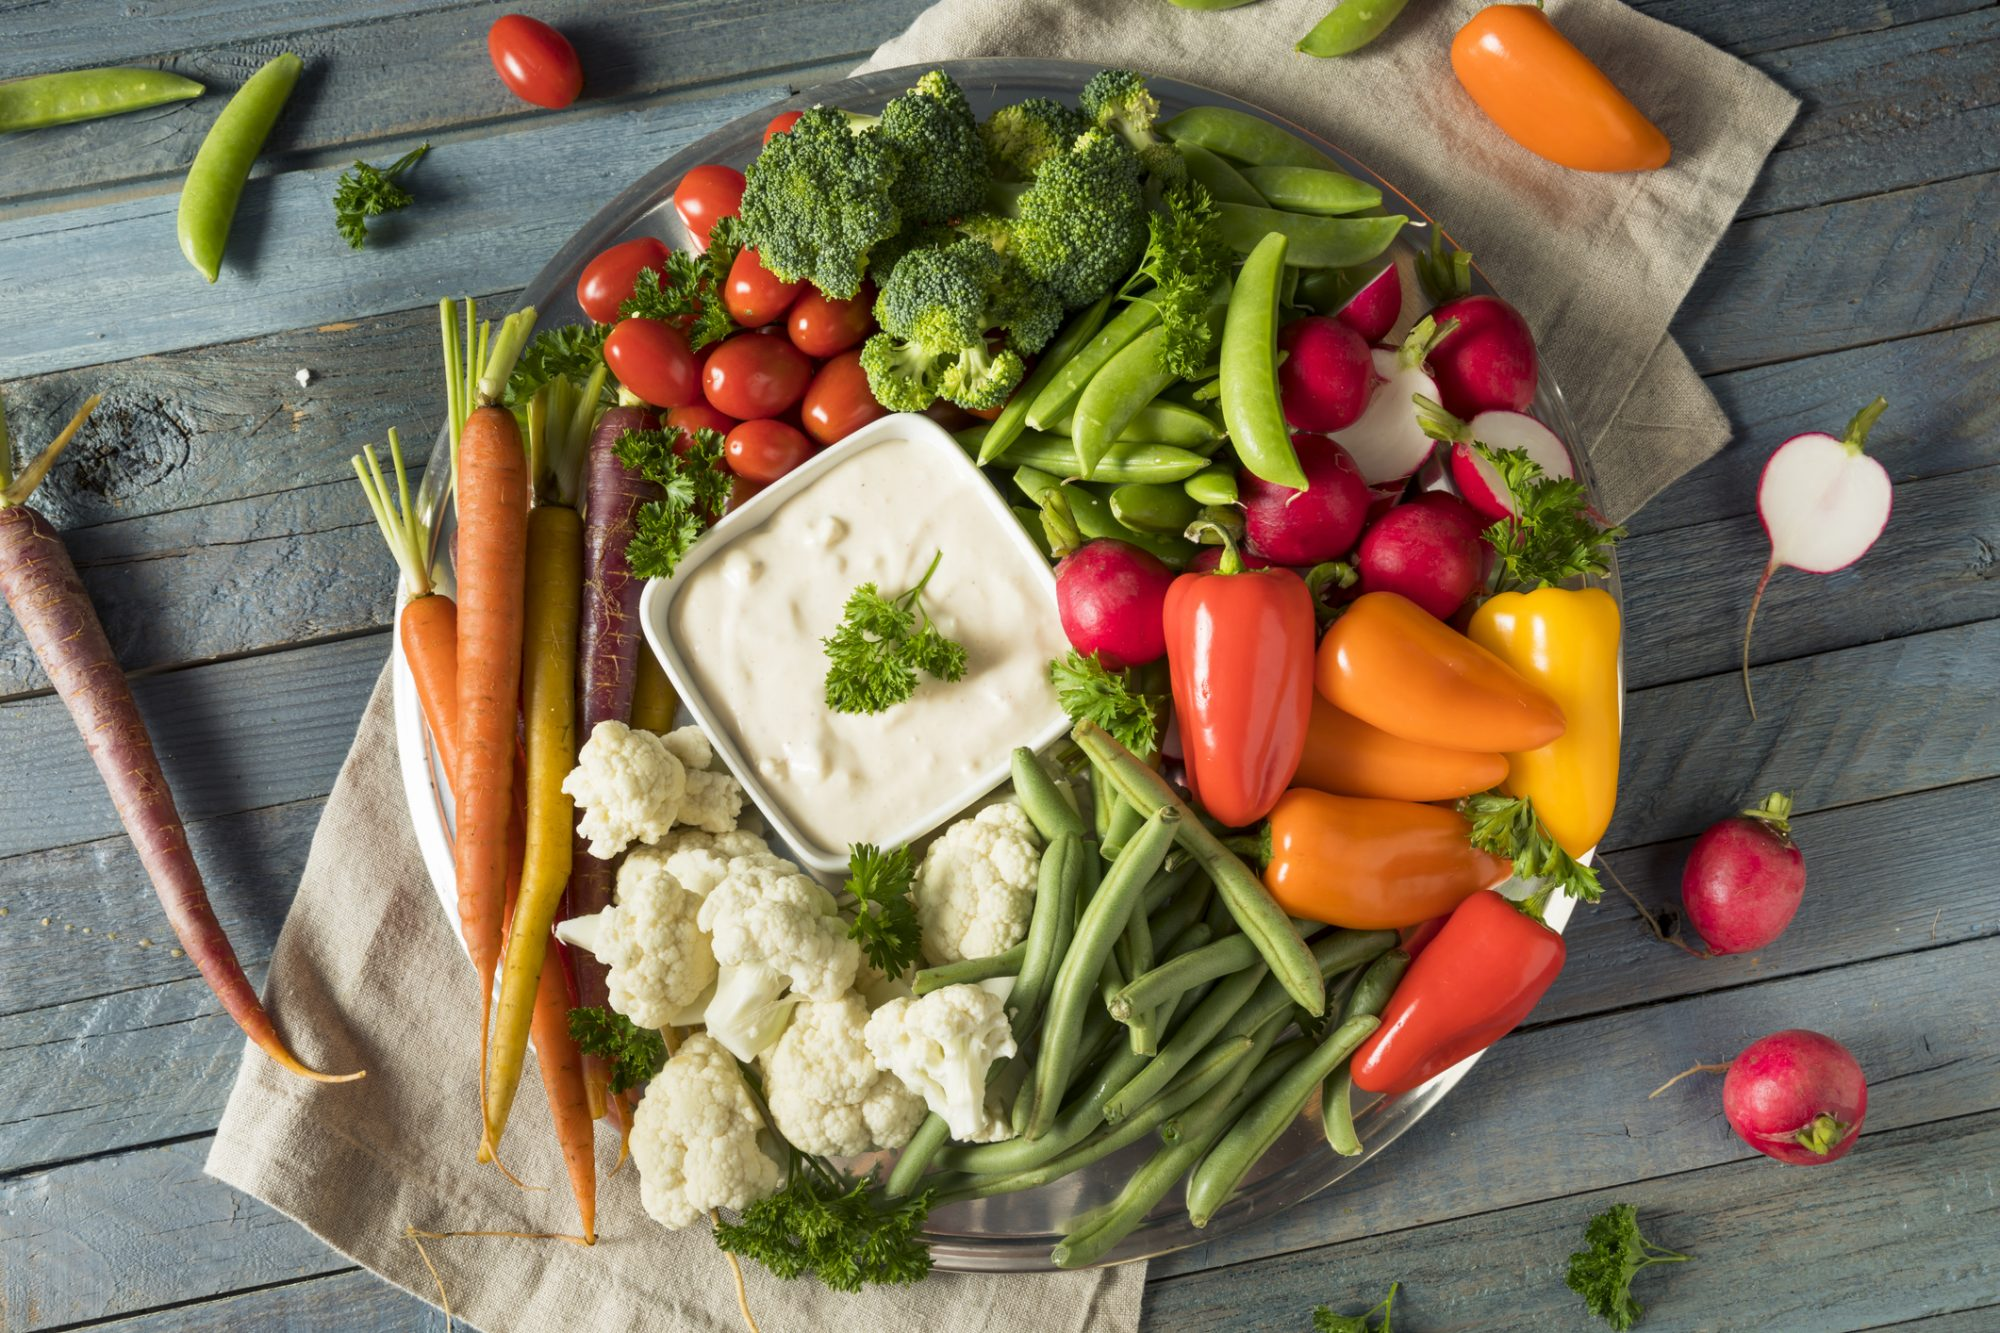 tray of raw vegetables